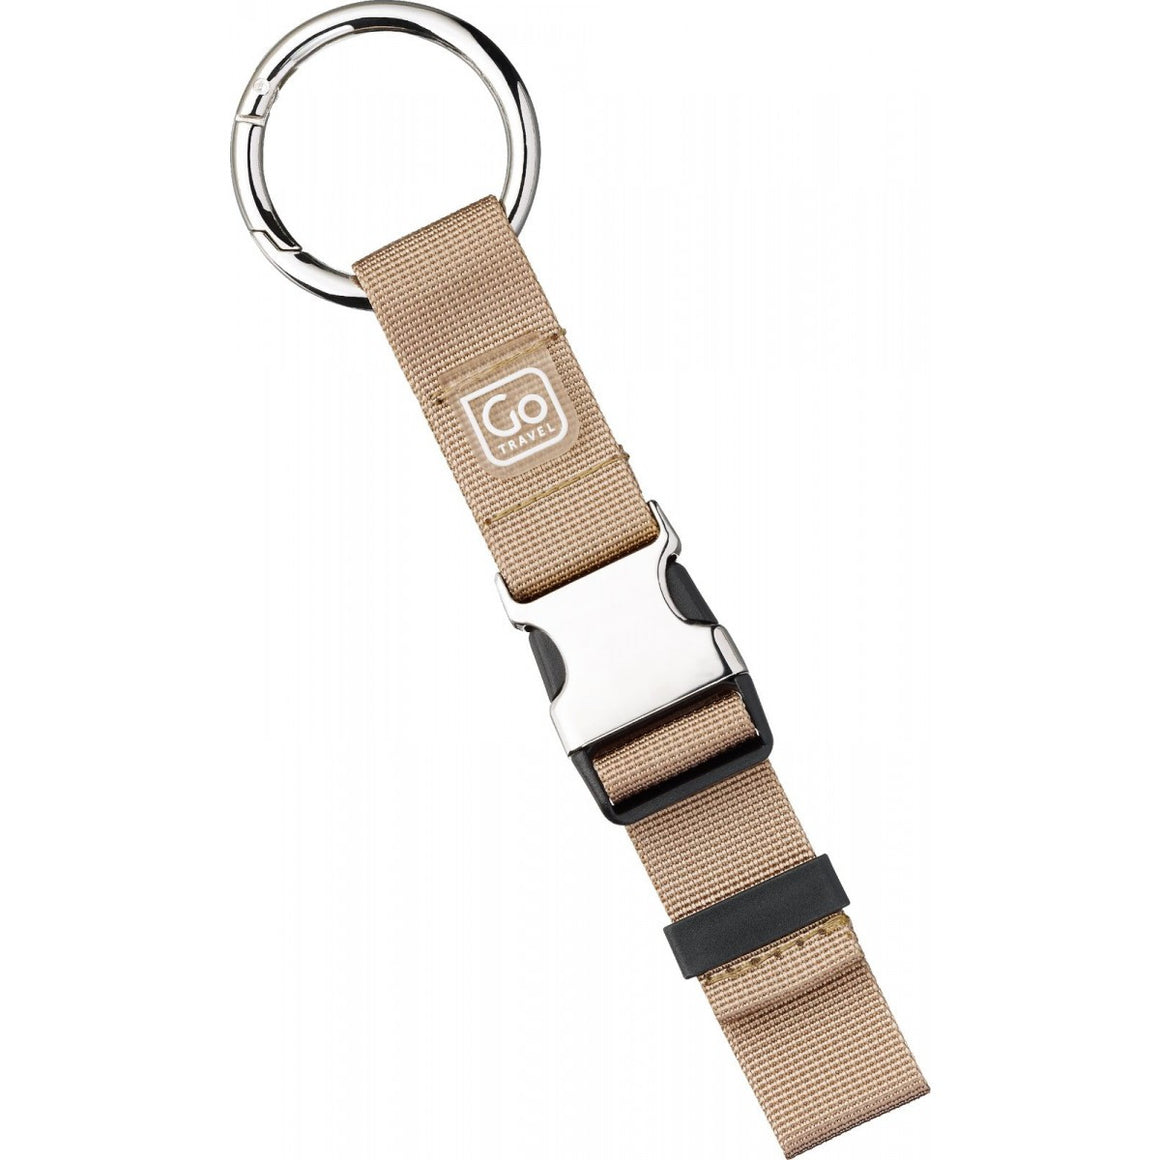 Go Travel Carry Strap - Jetsettr.com.au - 1